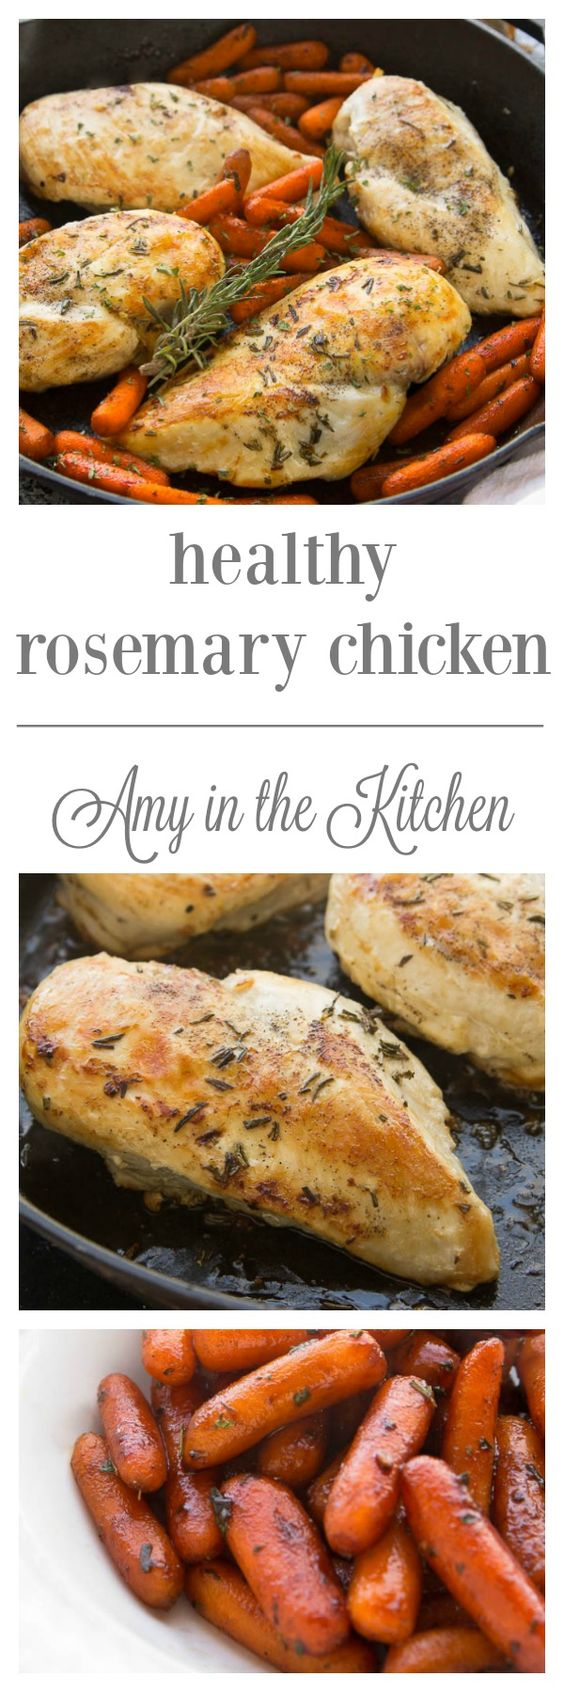 Baked Rosemary Chicken | This savory chicken dish is sure to hit the spot on a cold day. It's flavored with earthy rosemary and garlic. Absolutely delicious! | AmyintheKitchen.com